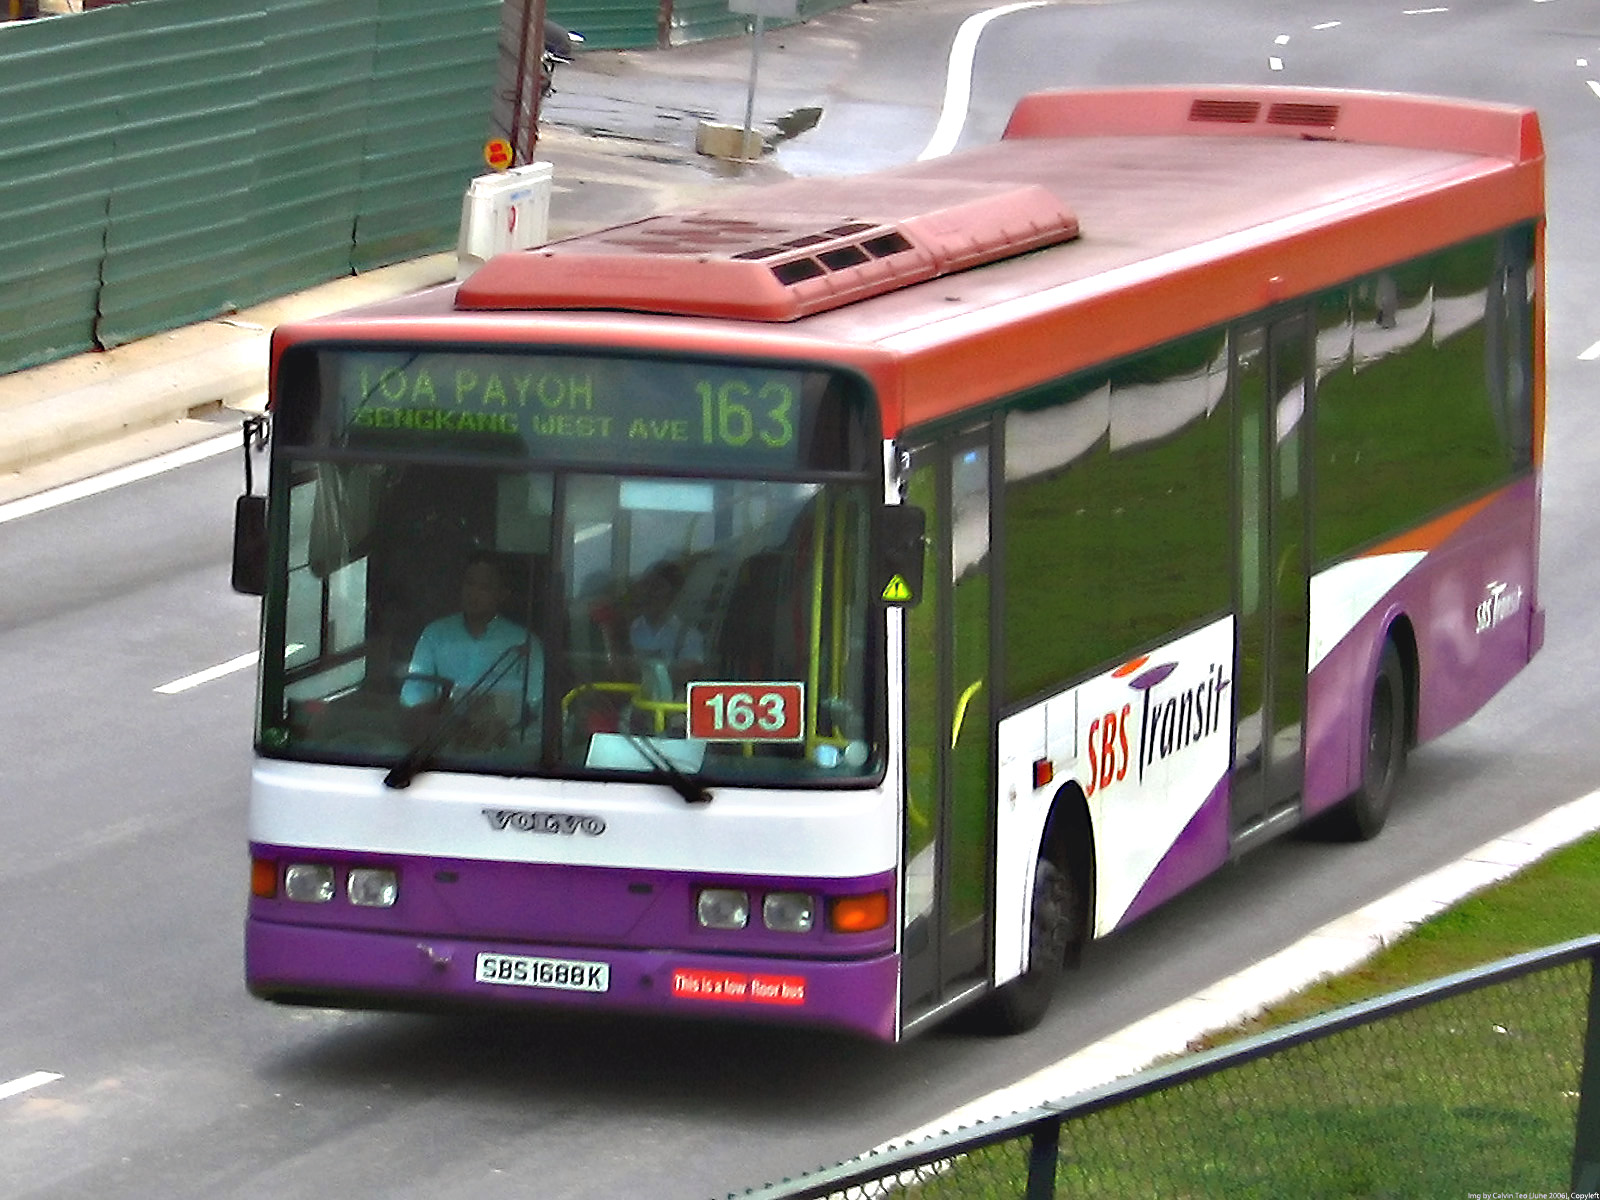 sbs transit swot analysis essay Financial analysis smrt corporation ltd smrt corporation ltd introduction smrt the public transport industry in singapore is a duopoly industry, with sbs transit.